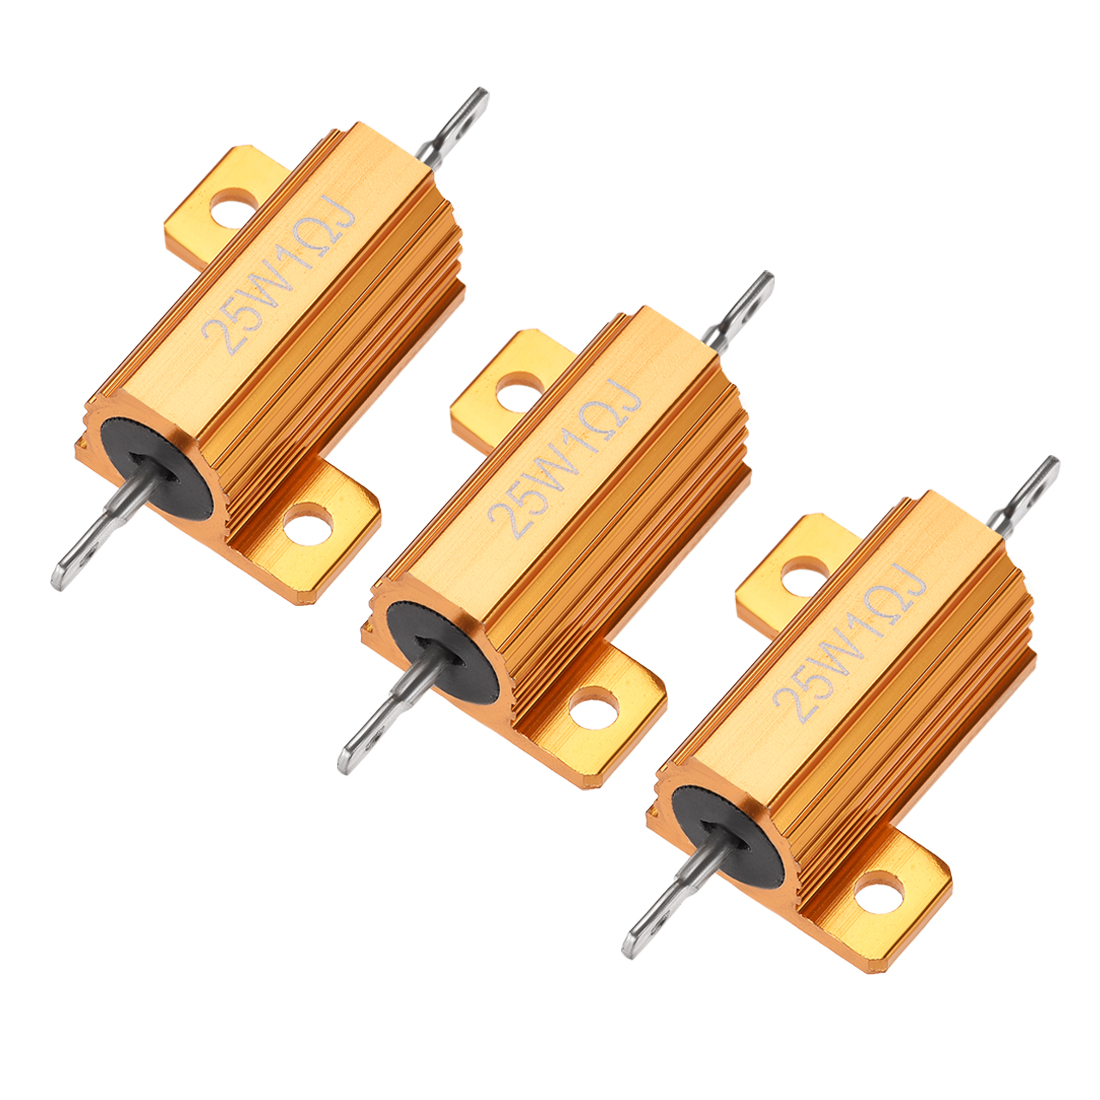 25W 1 Ohm 5% Aluminum Housing Resistor Wirewound Resistor Gold Tone 3 Pcs